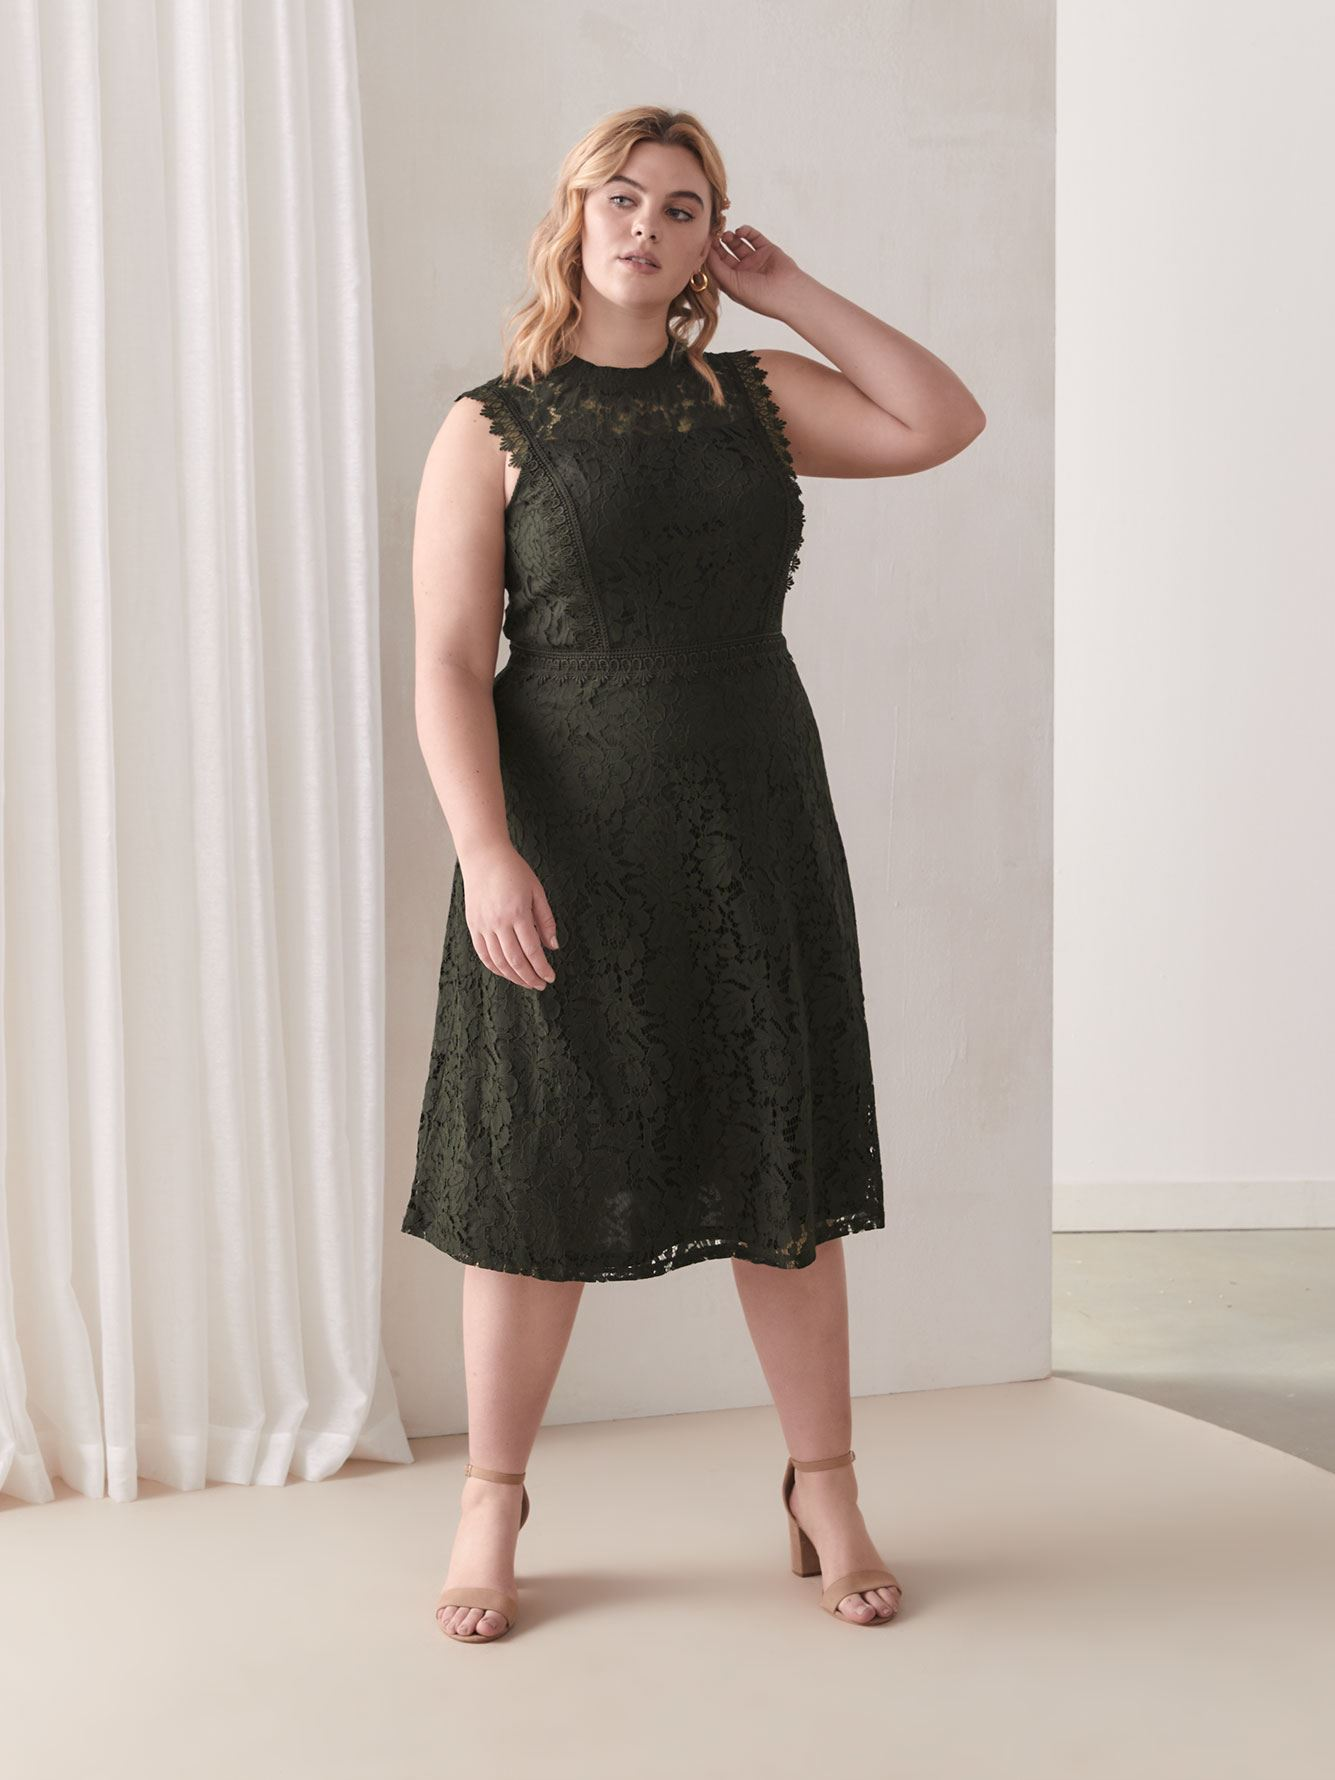 Grazia Khaki Lace Dress - City Chic